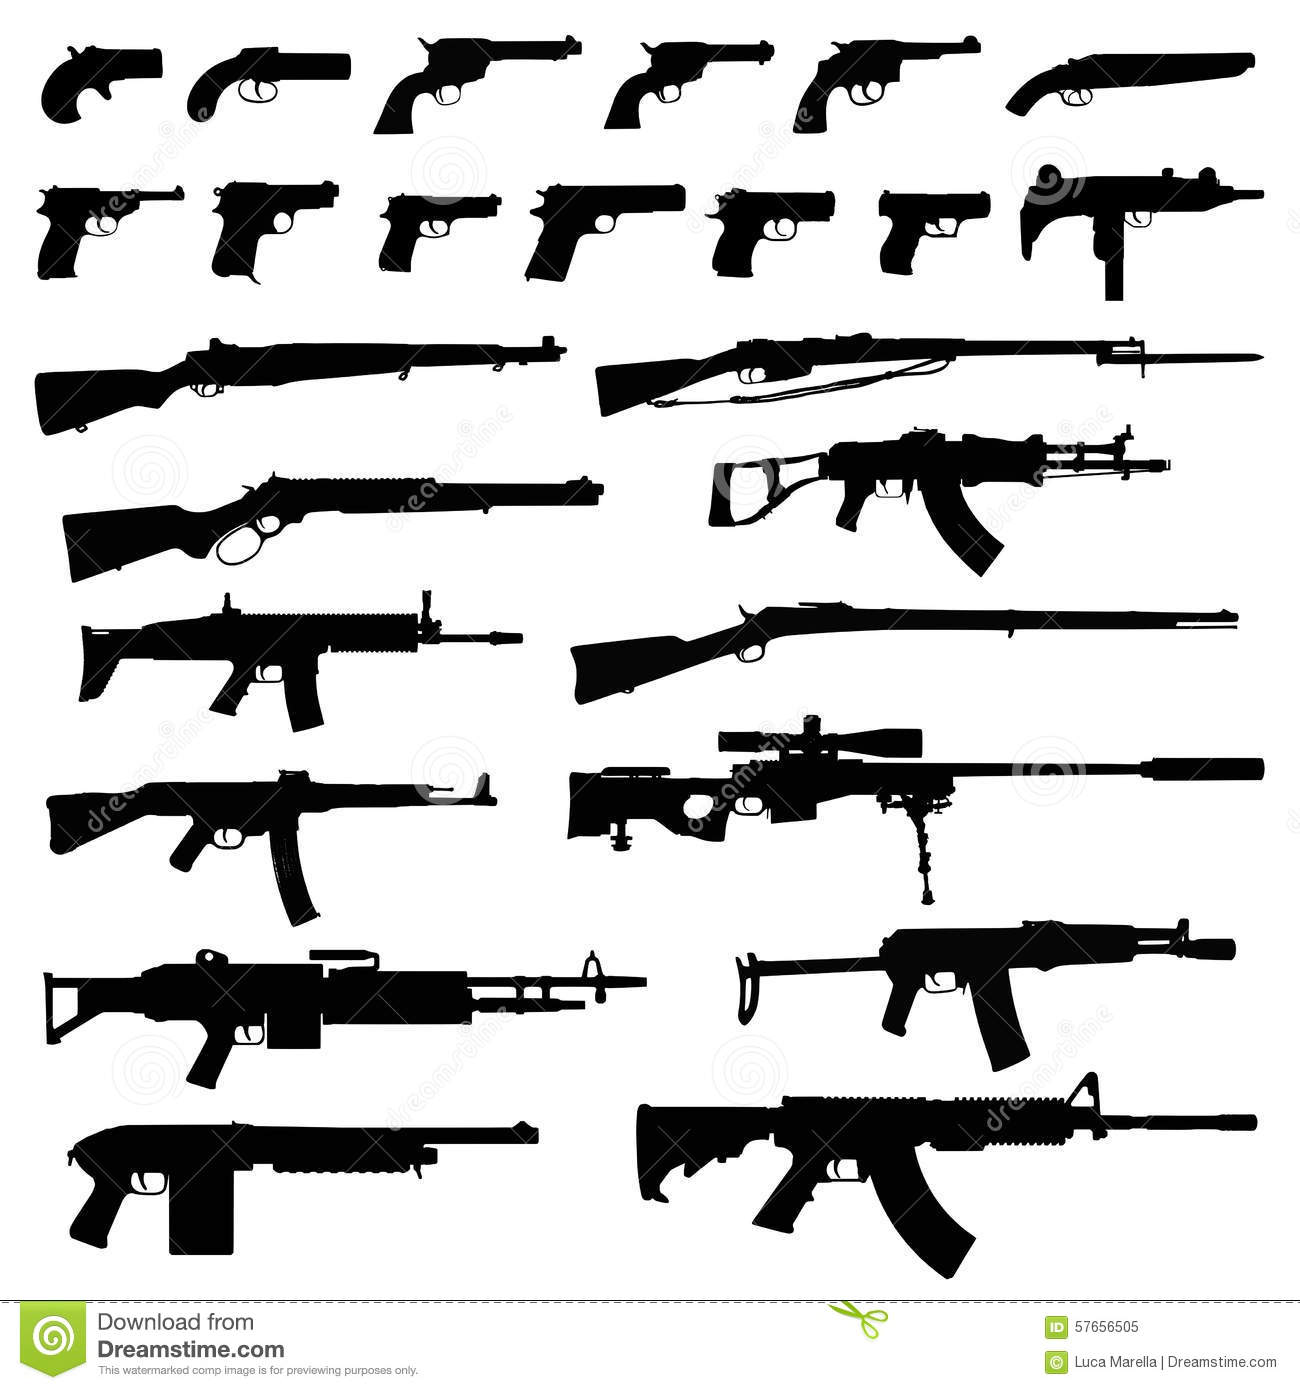 Cool Names For Your House Weapons Silhouettes Stock Vector Image 57656505